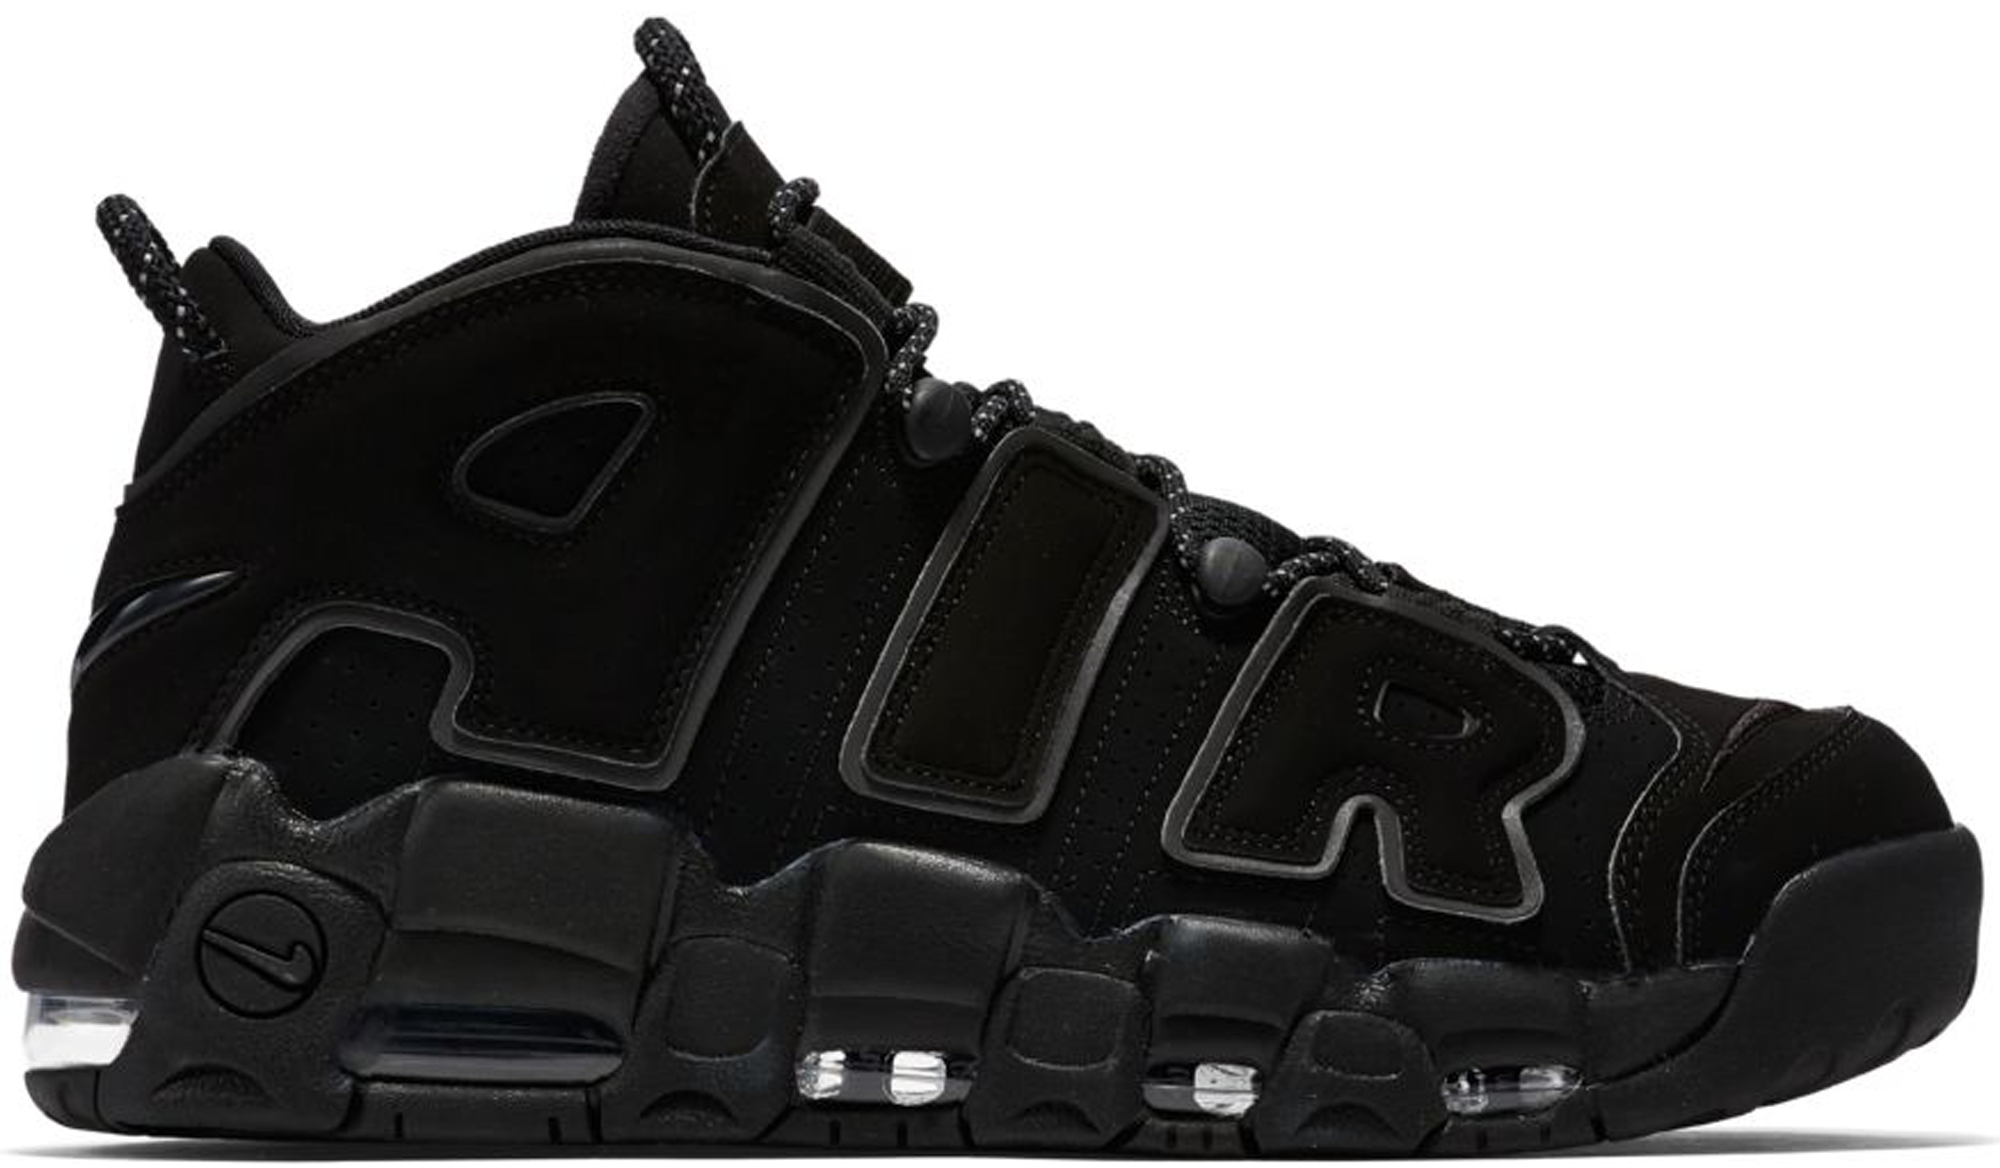 Nike Air More Uptempo Black Reflective 414962-004 Triple Black Basketball Shoes